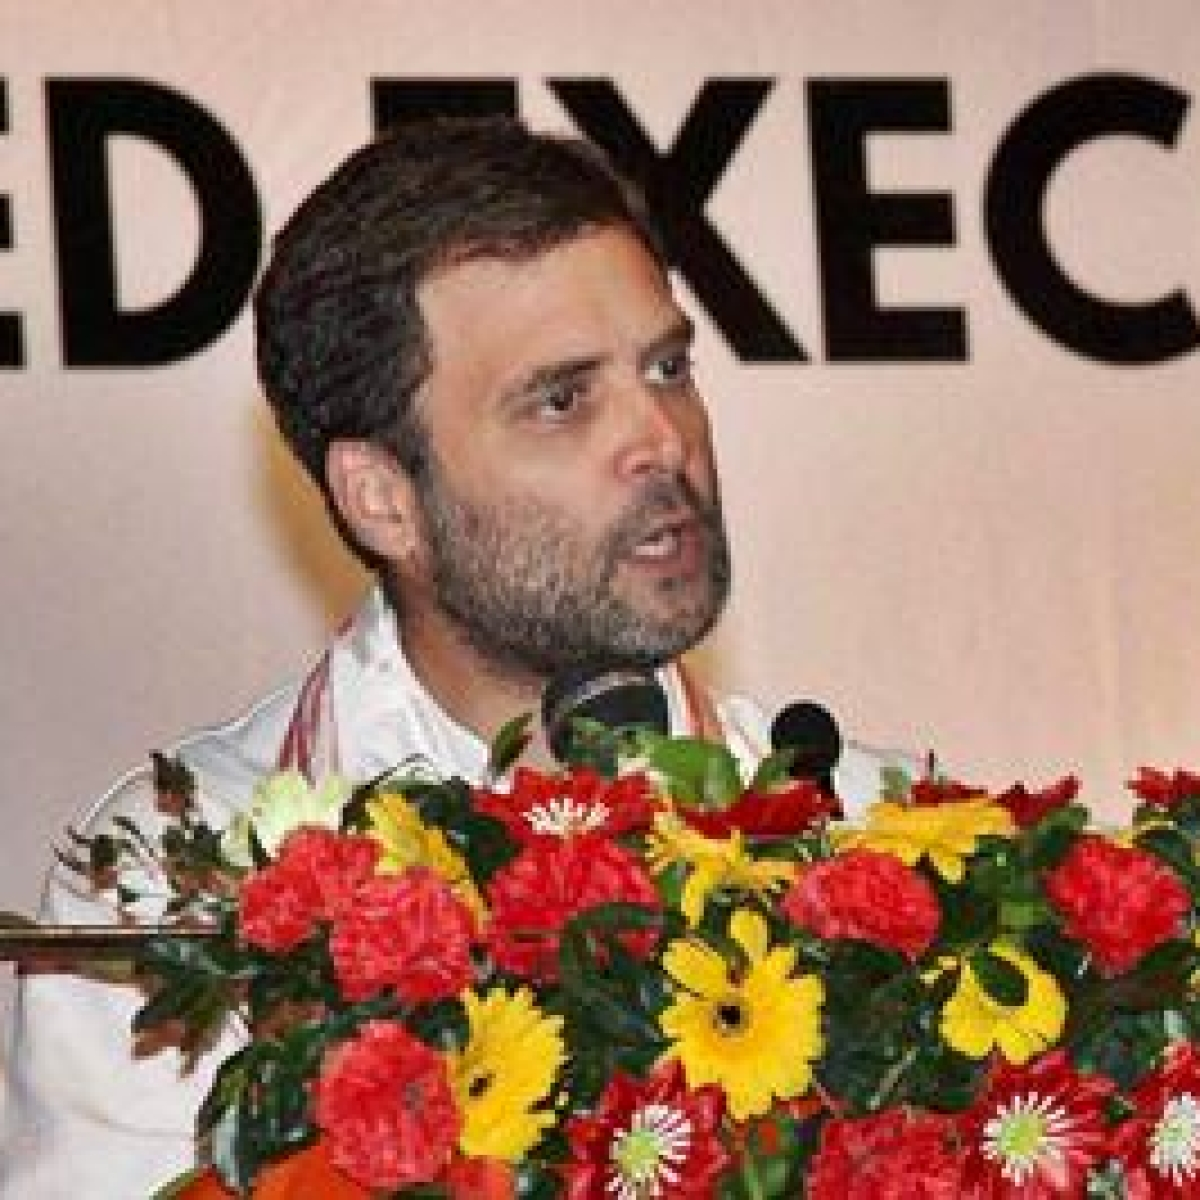 Rape in India Comment: EC urged to punish Rahul for violating women's dignity